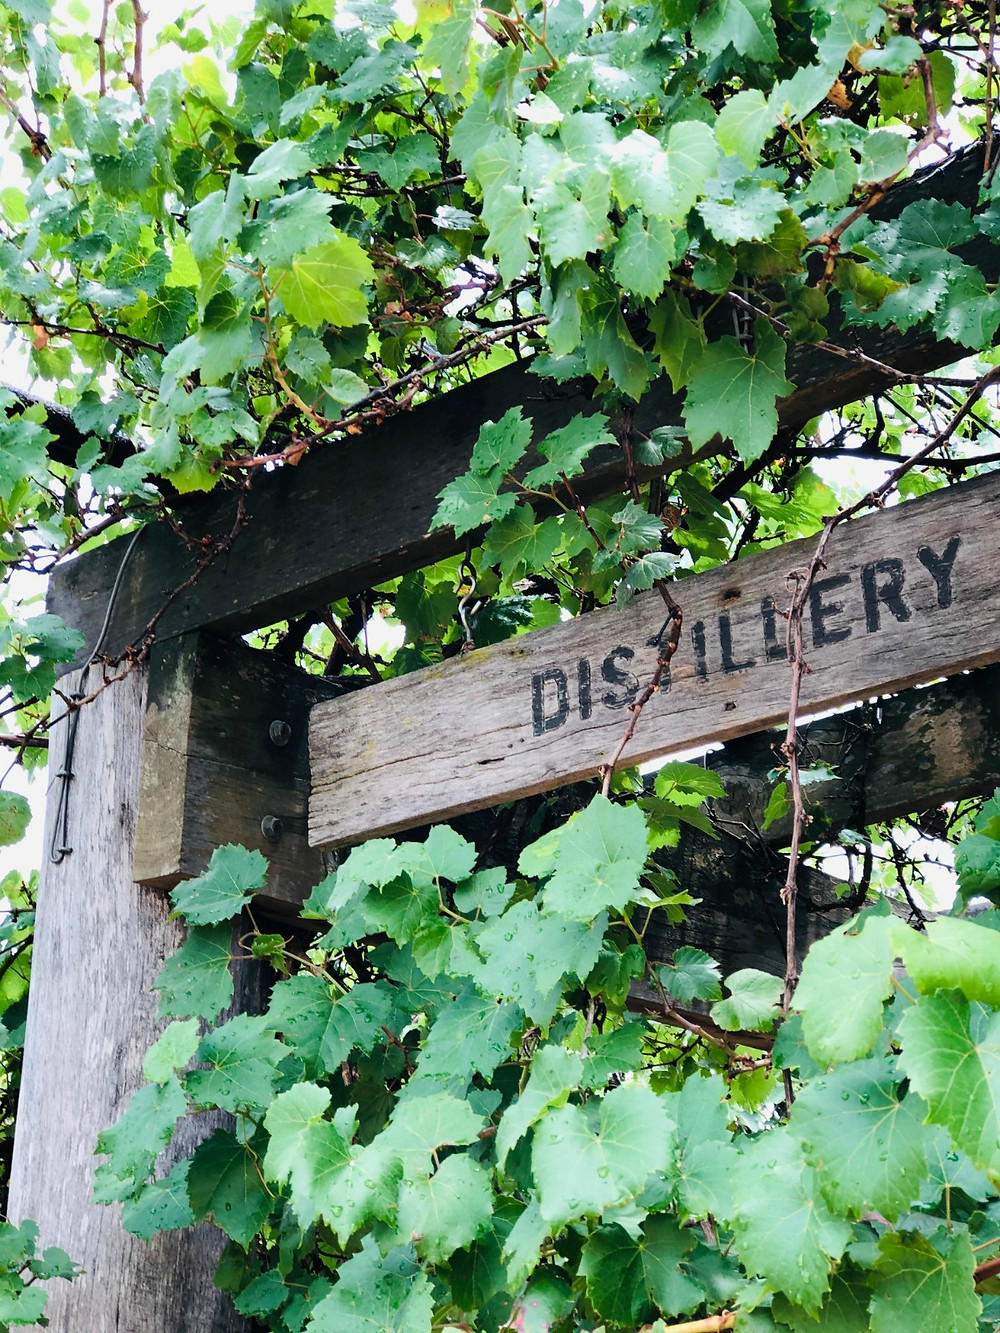 Distillery door - what happens when you buy Australian craft spirits?